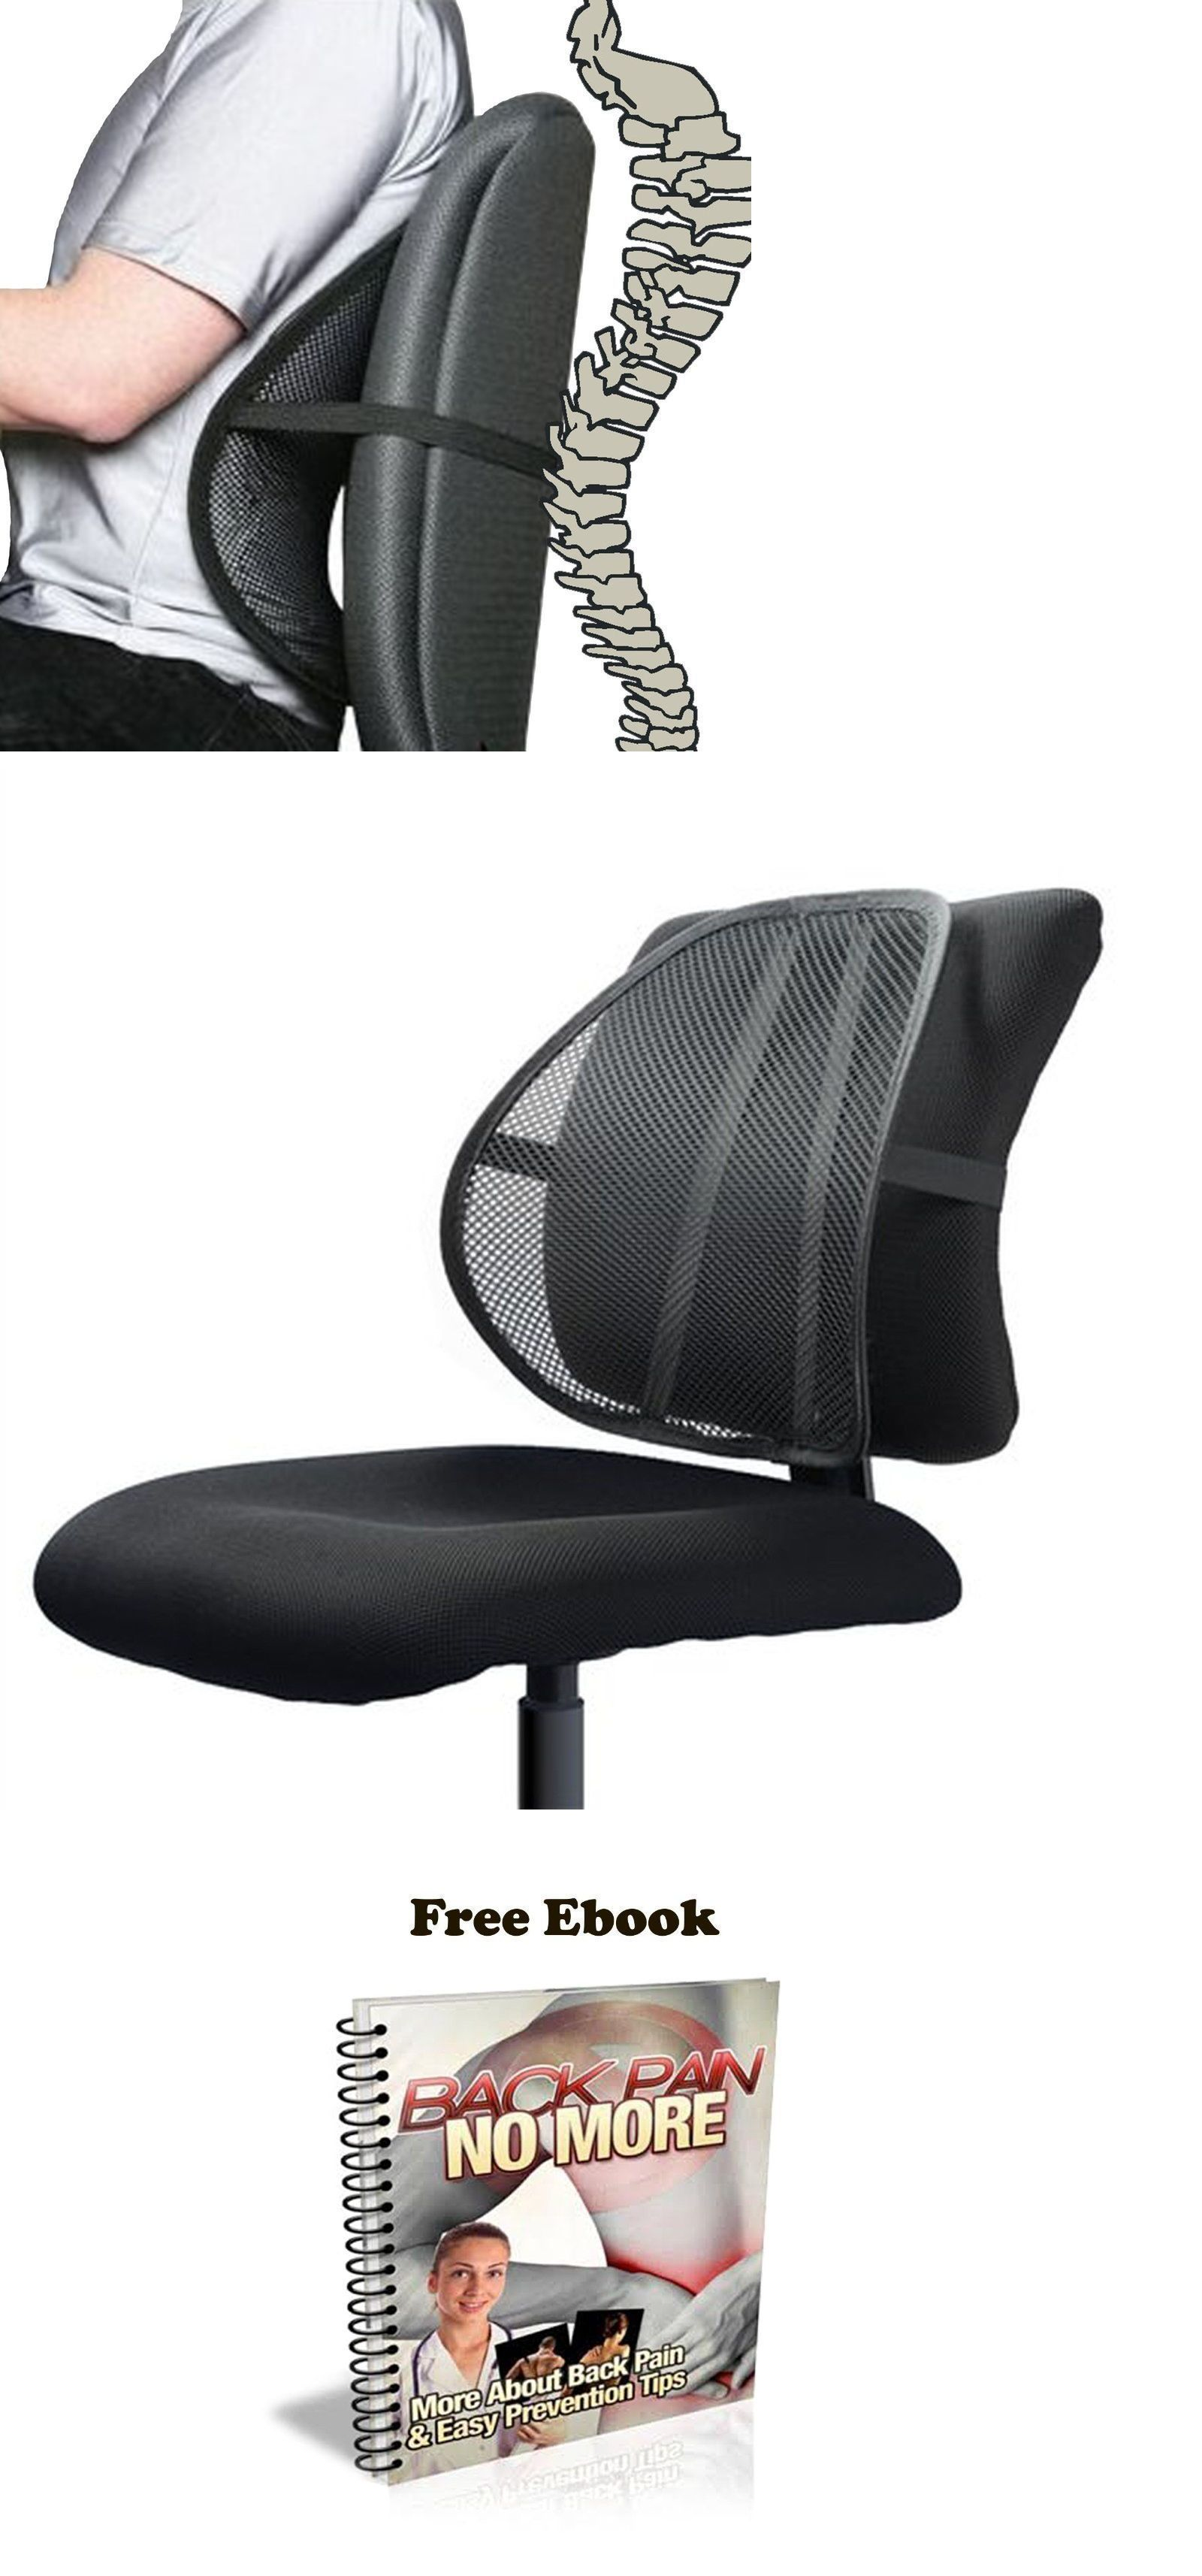 posture corrector for office chair kitchen tables and chairs sale orthotics braces sleeves lumbar support car mesh back pain relief desk buy it now only 31 92